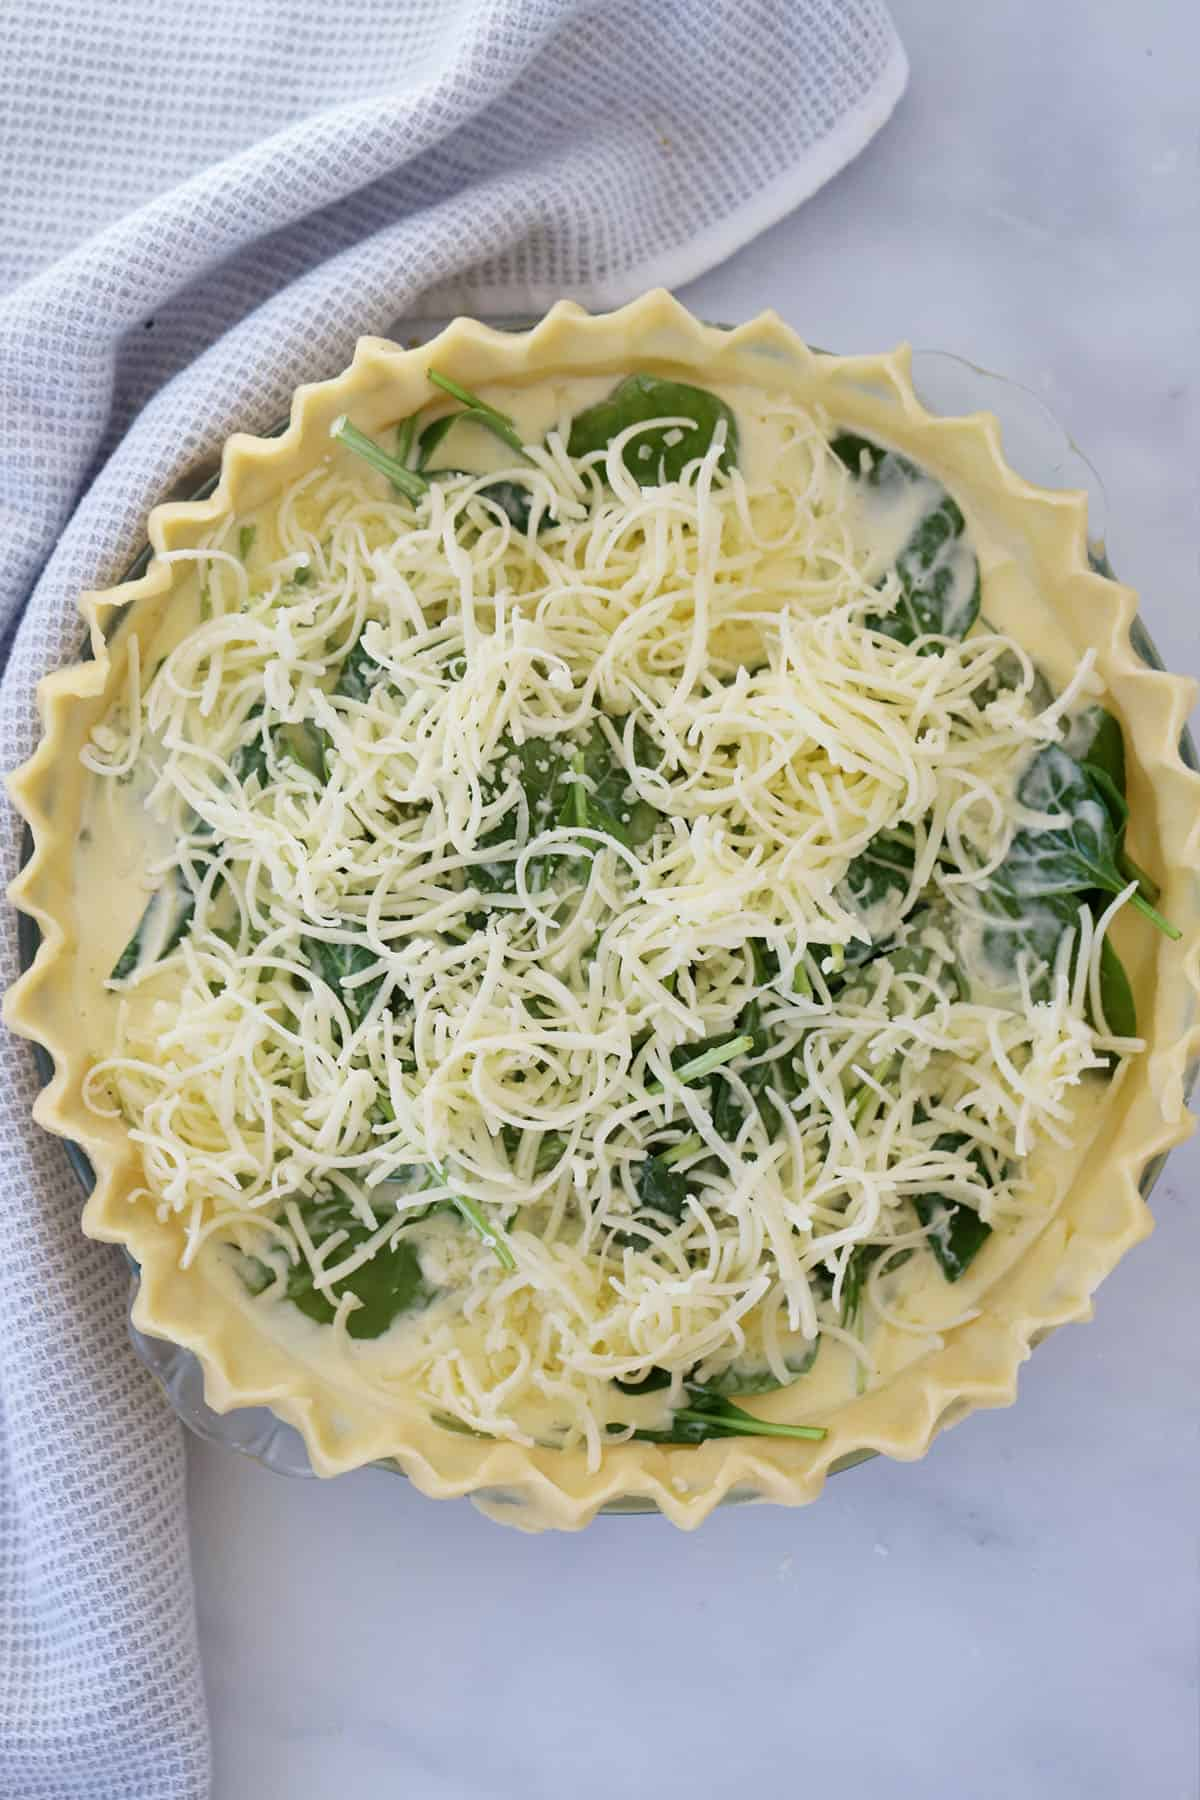 Crimped pie dough filled with custard, spinach and cheese ready to bake.